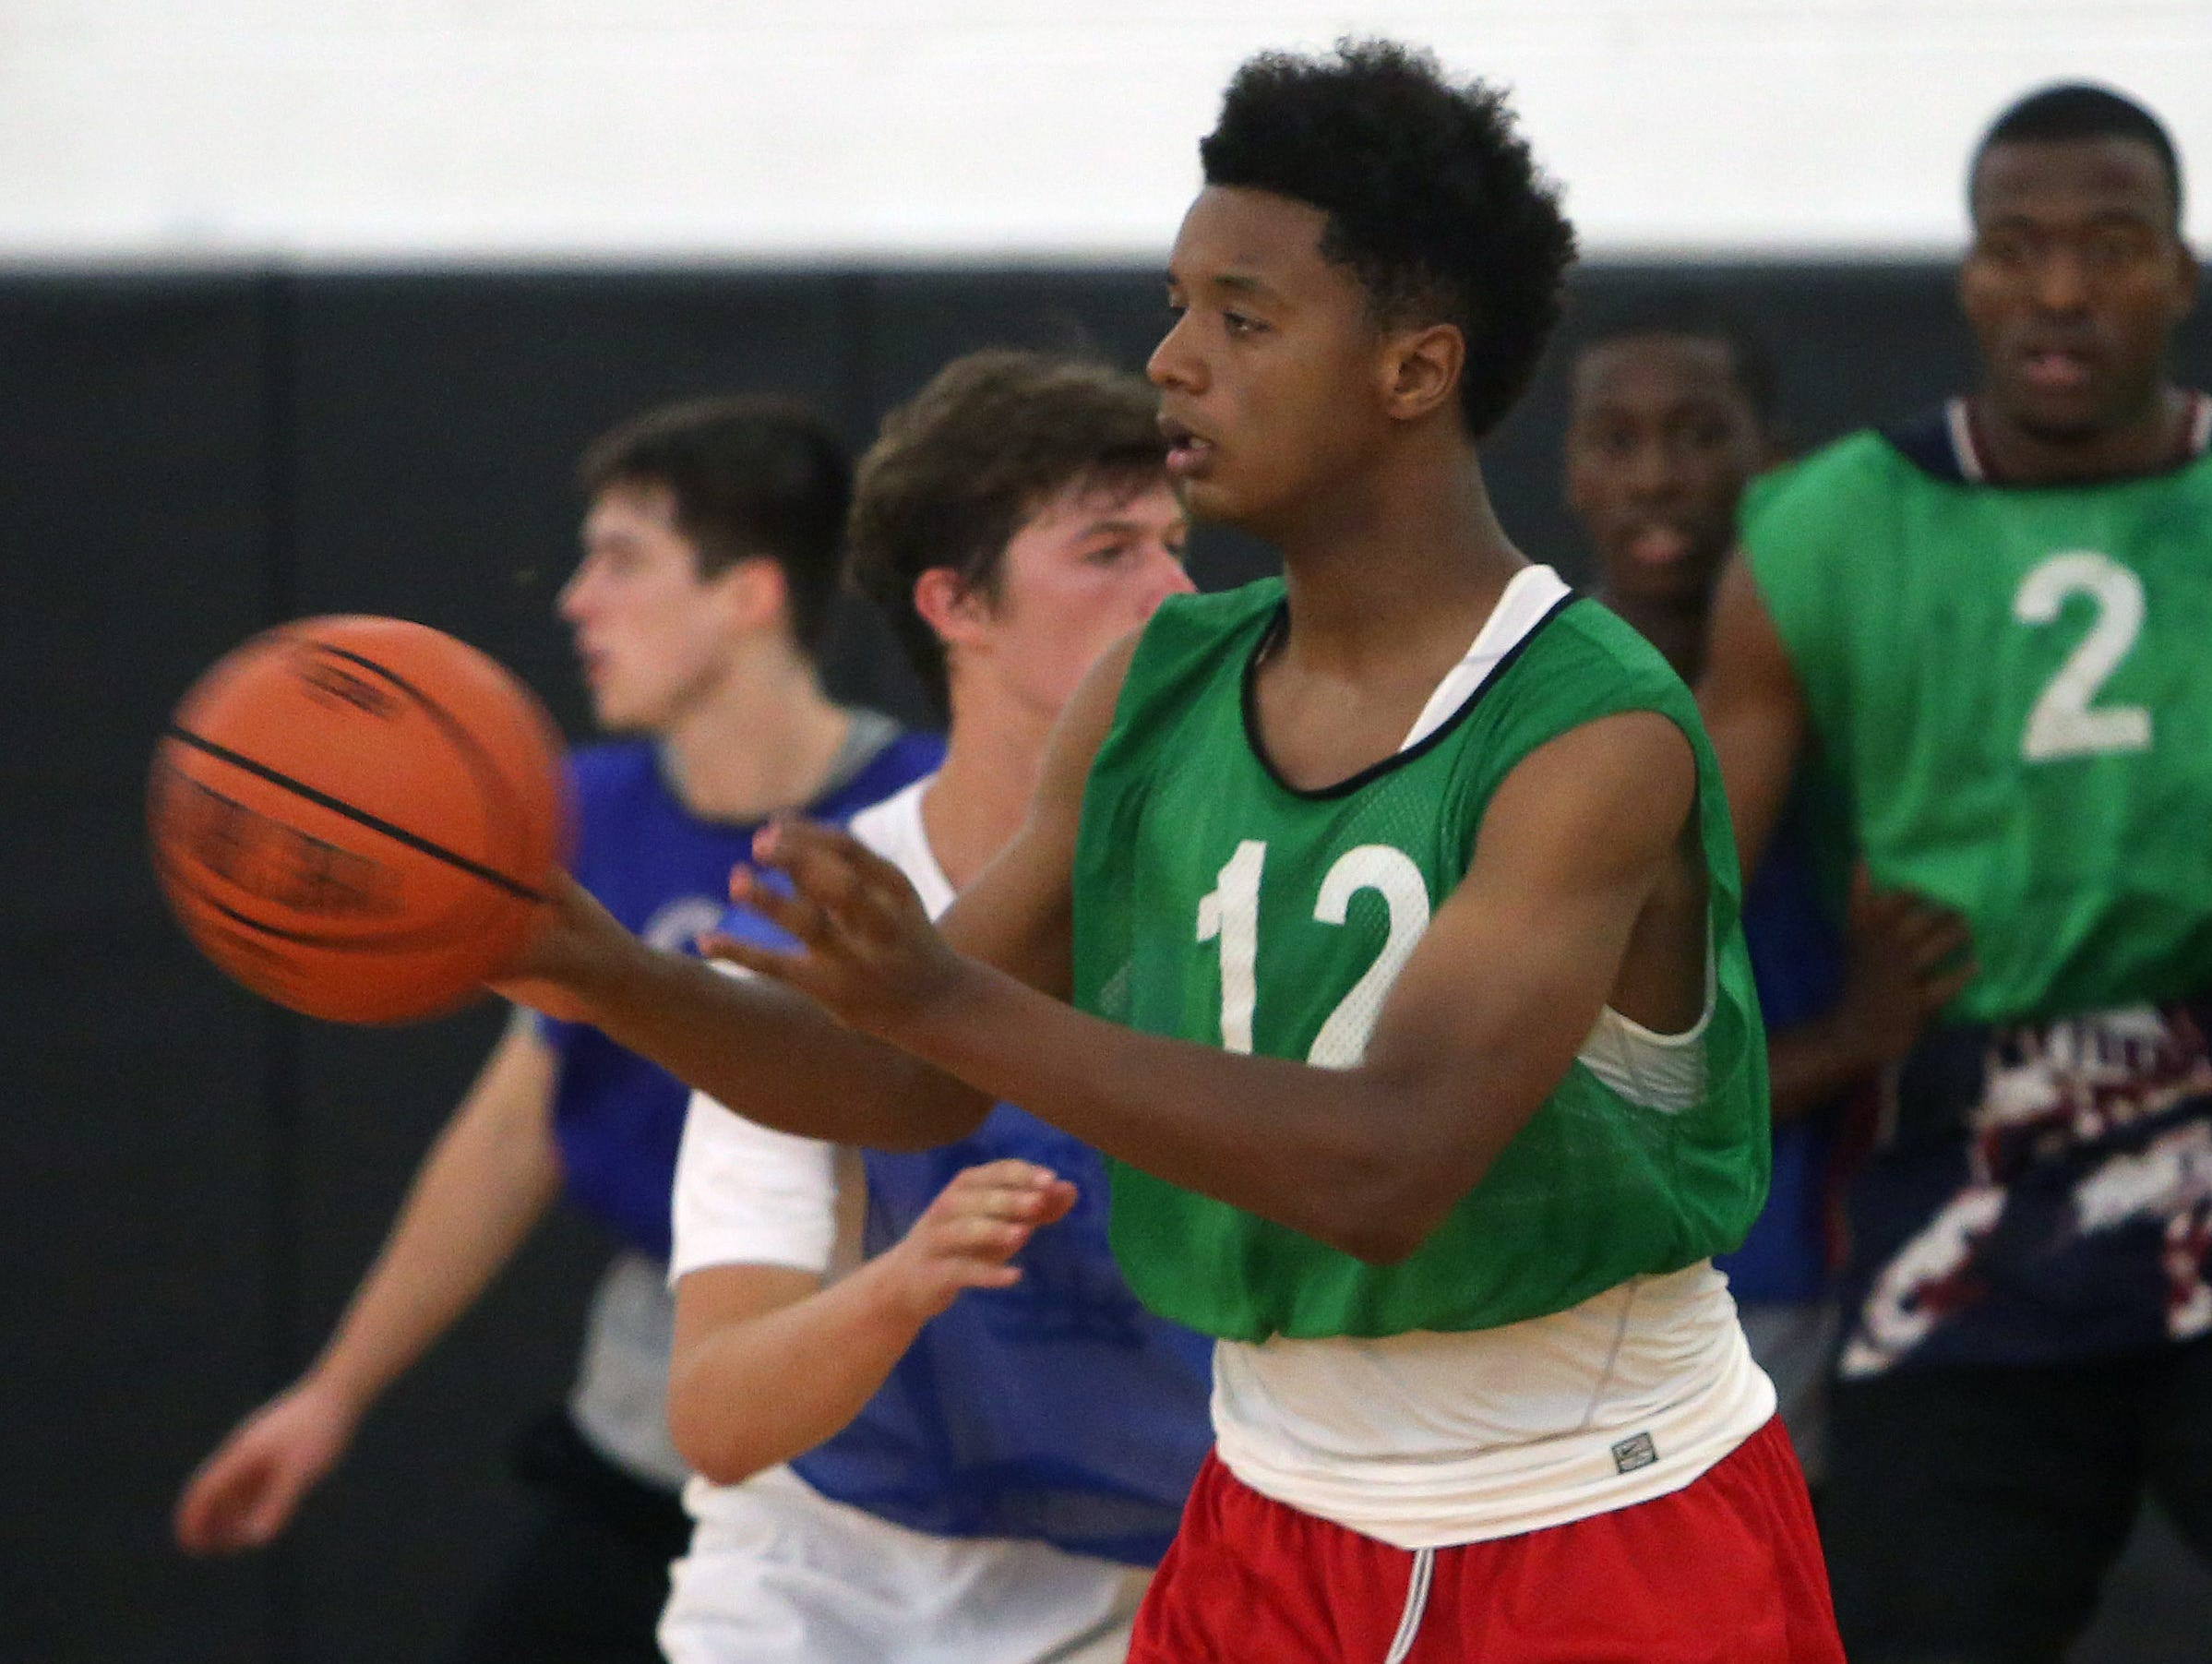 Kennedy Catholic's Elijah Hughes passes to a teammate during practice with the Hudson Valley team at Croton High School July 29, 2015. The team is preparing for the BCANY Summer Hoops Festival.